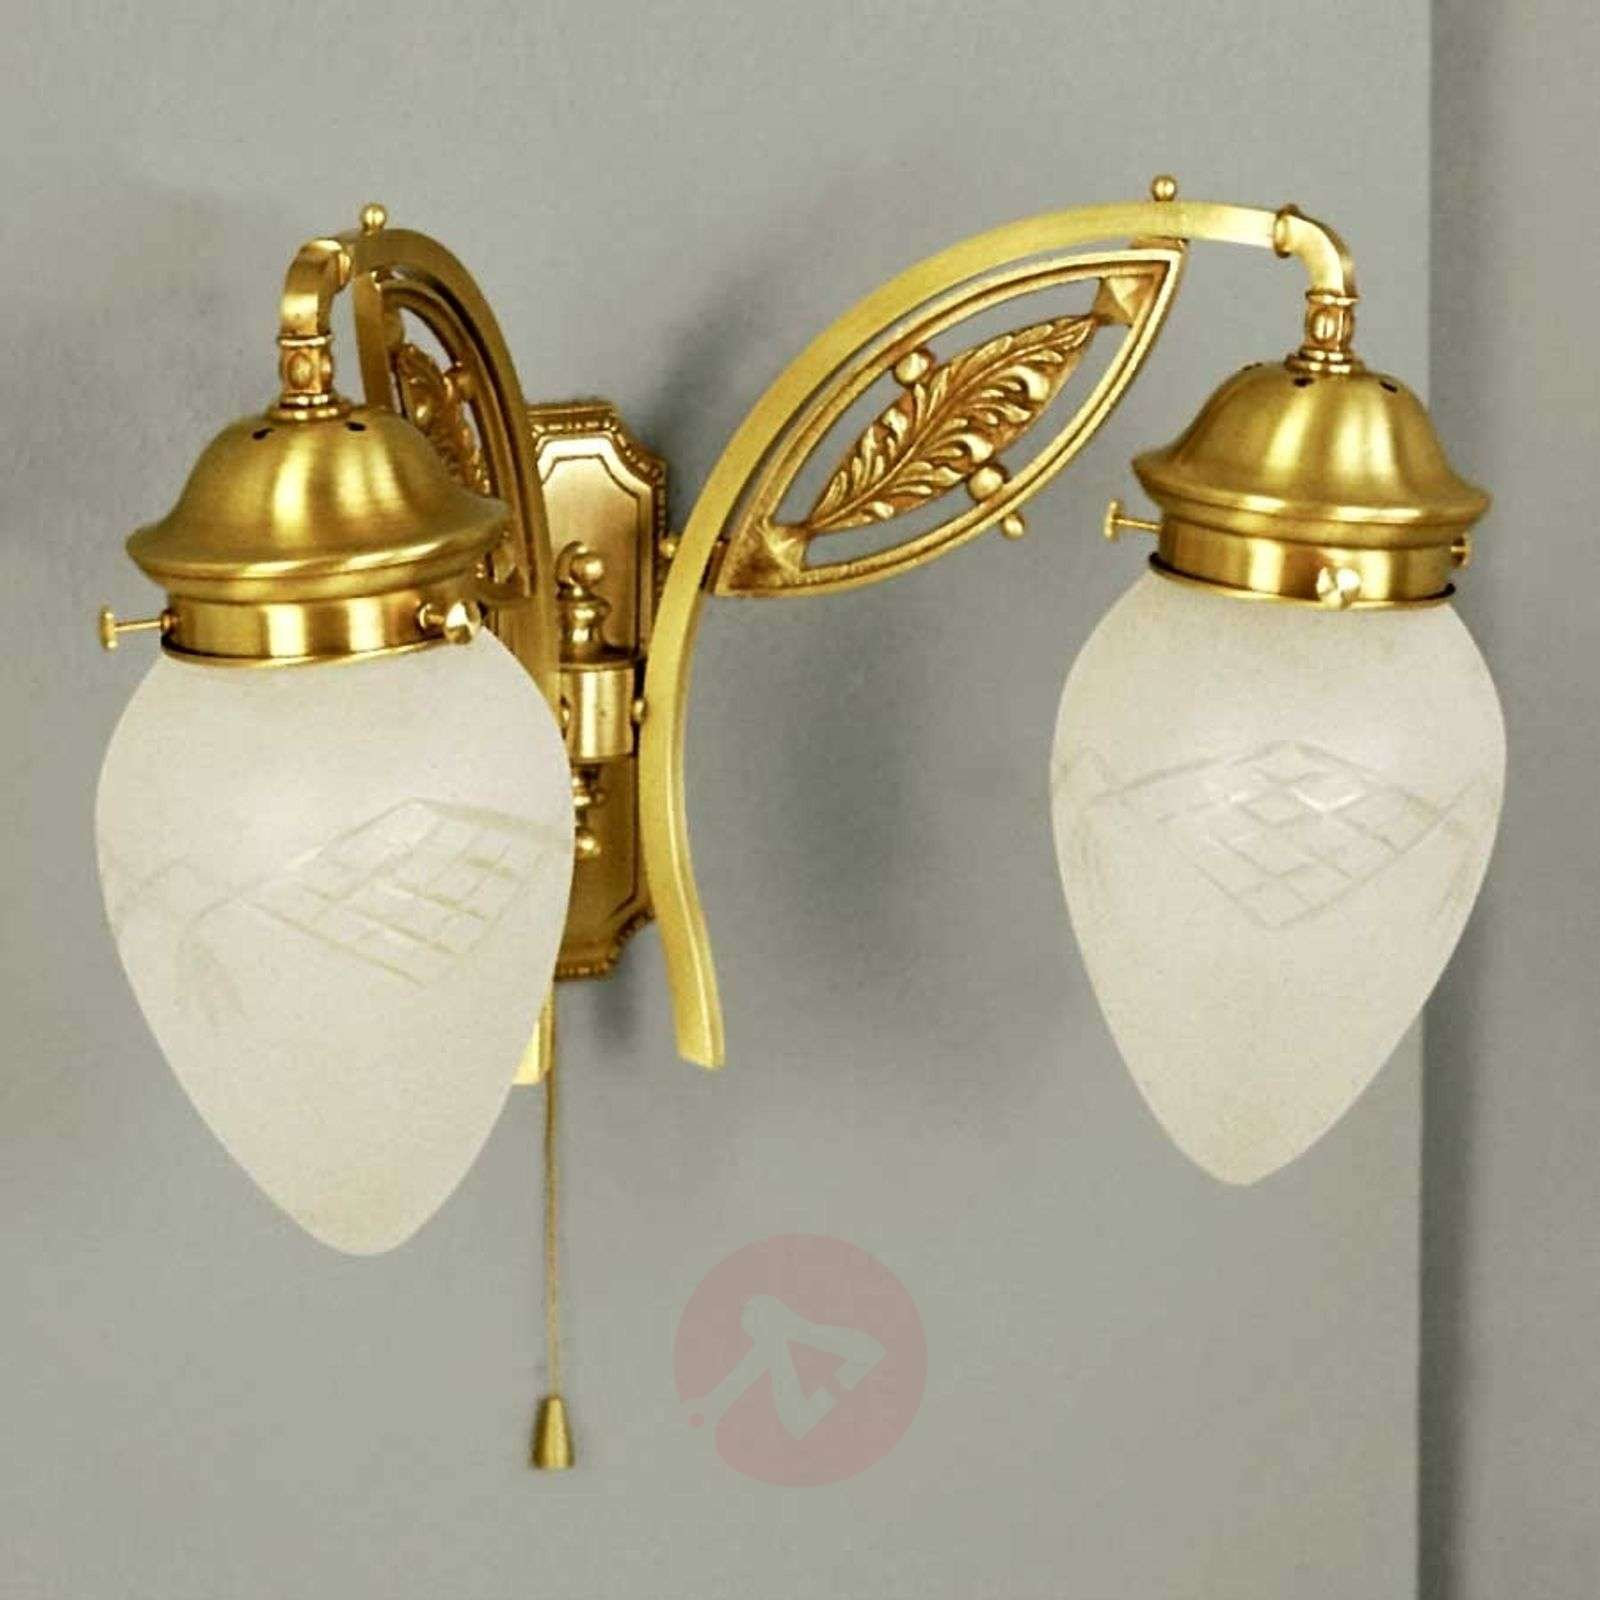 Budapest Wall Light with Pull Switch Bronze Lights.co.uk